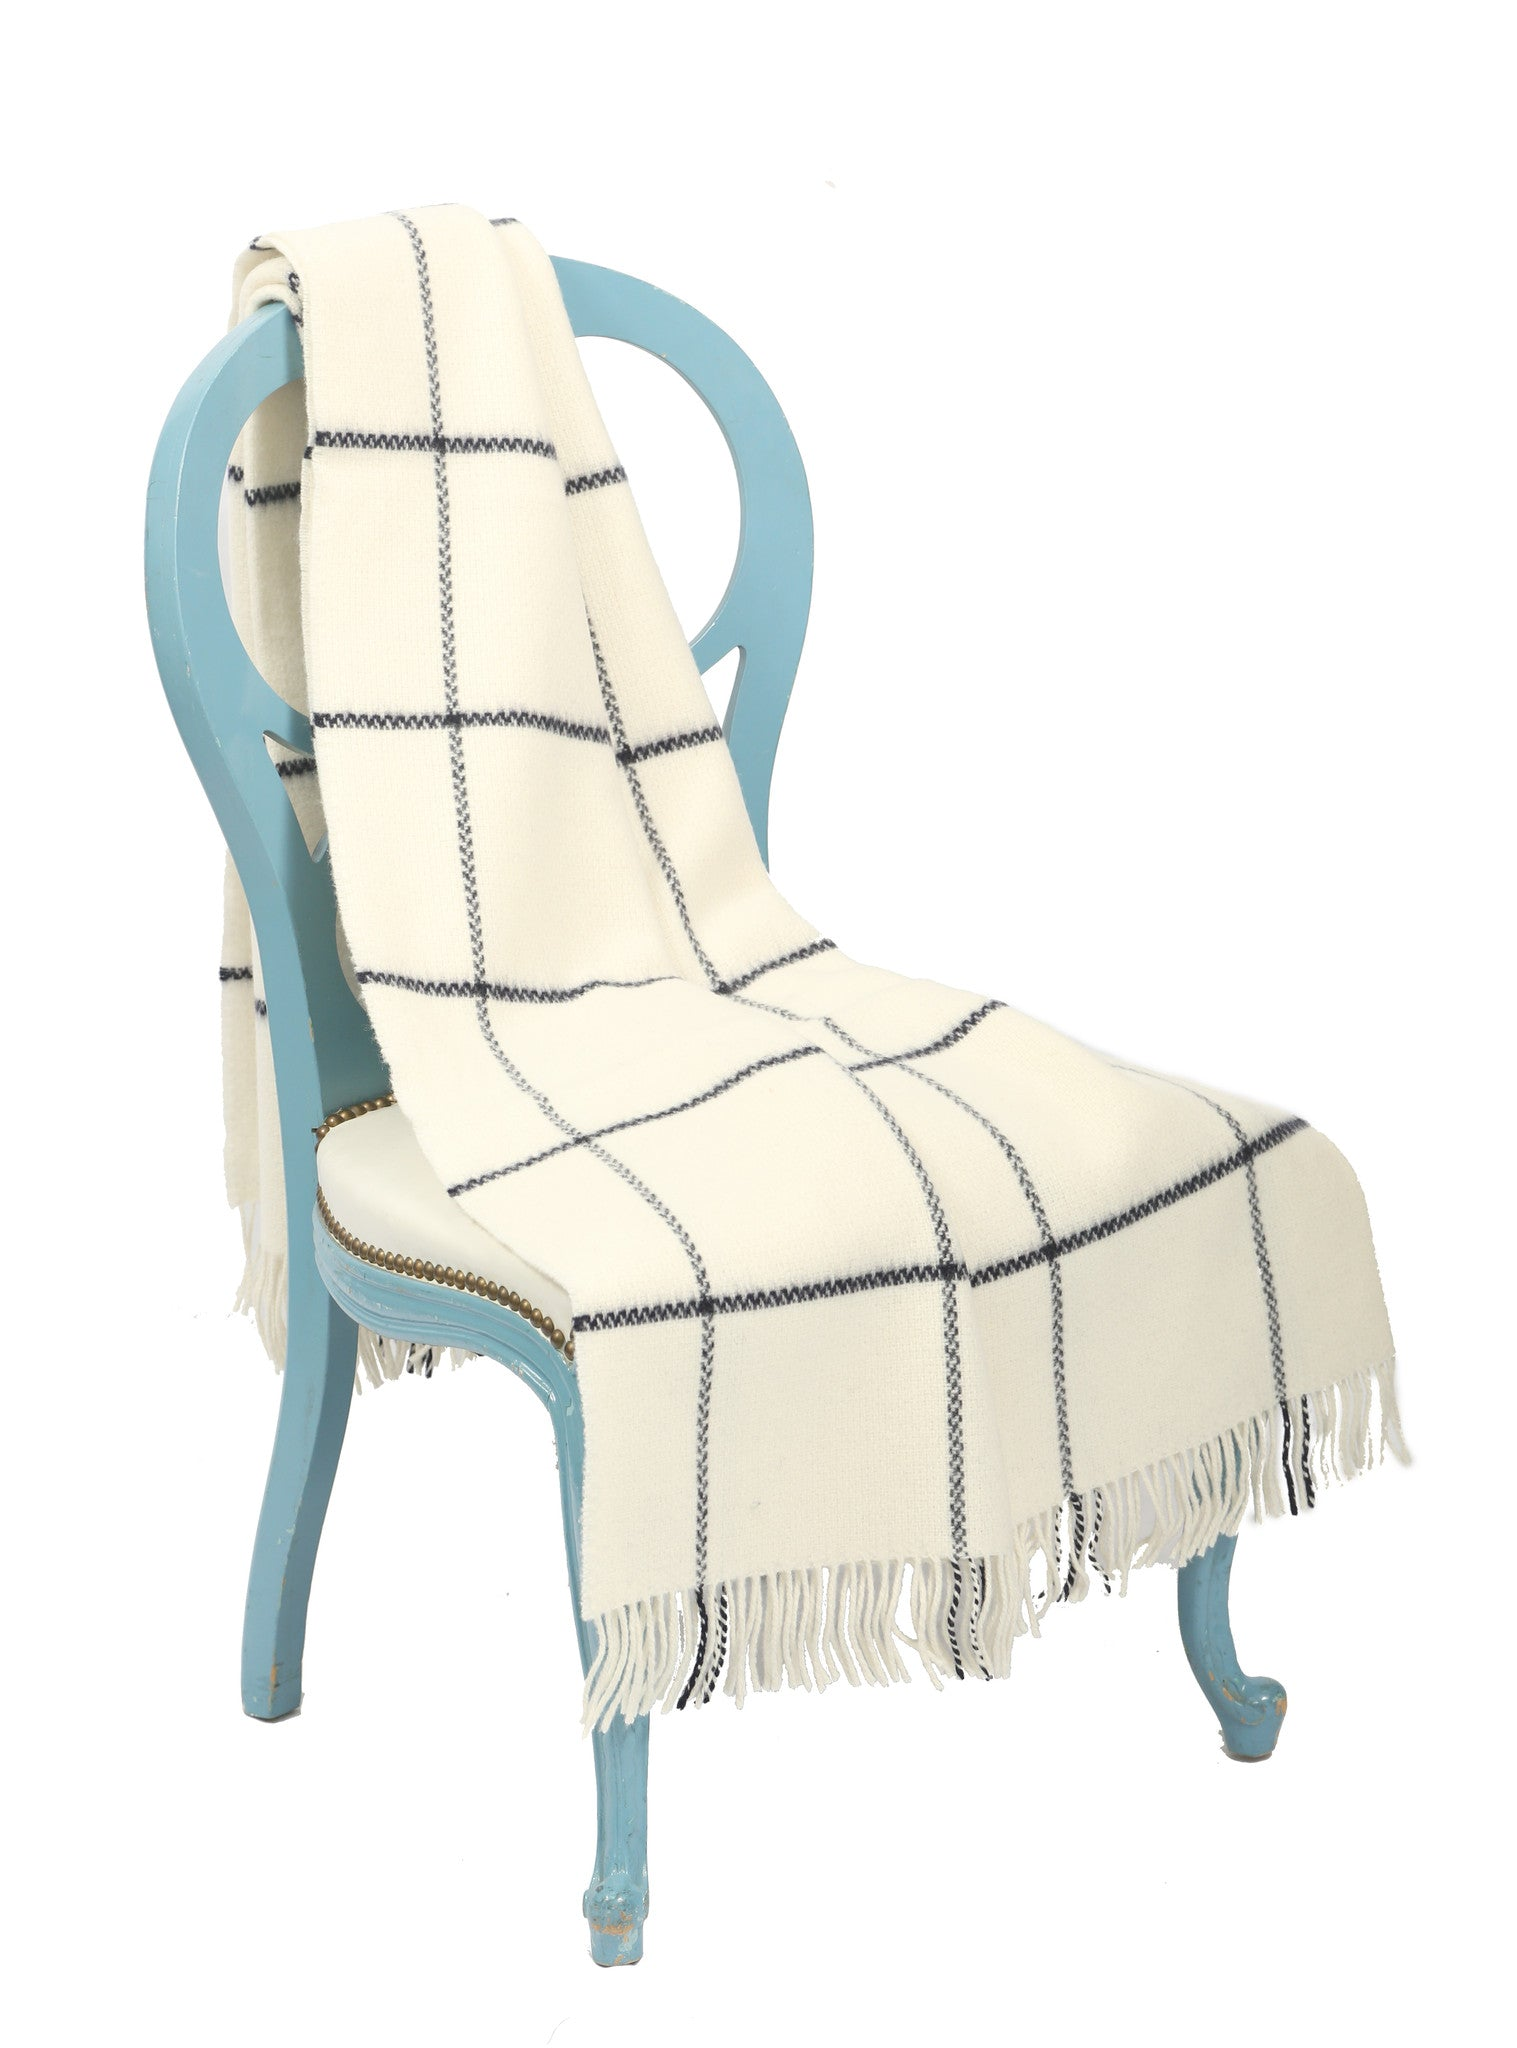 Large All Wool Throw Blanket / Skipper Blue on White - Carleton Varney